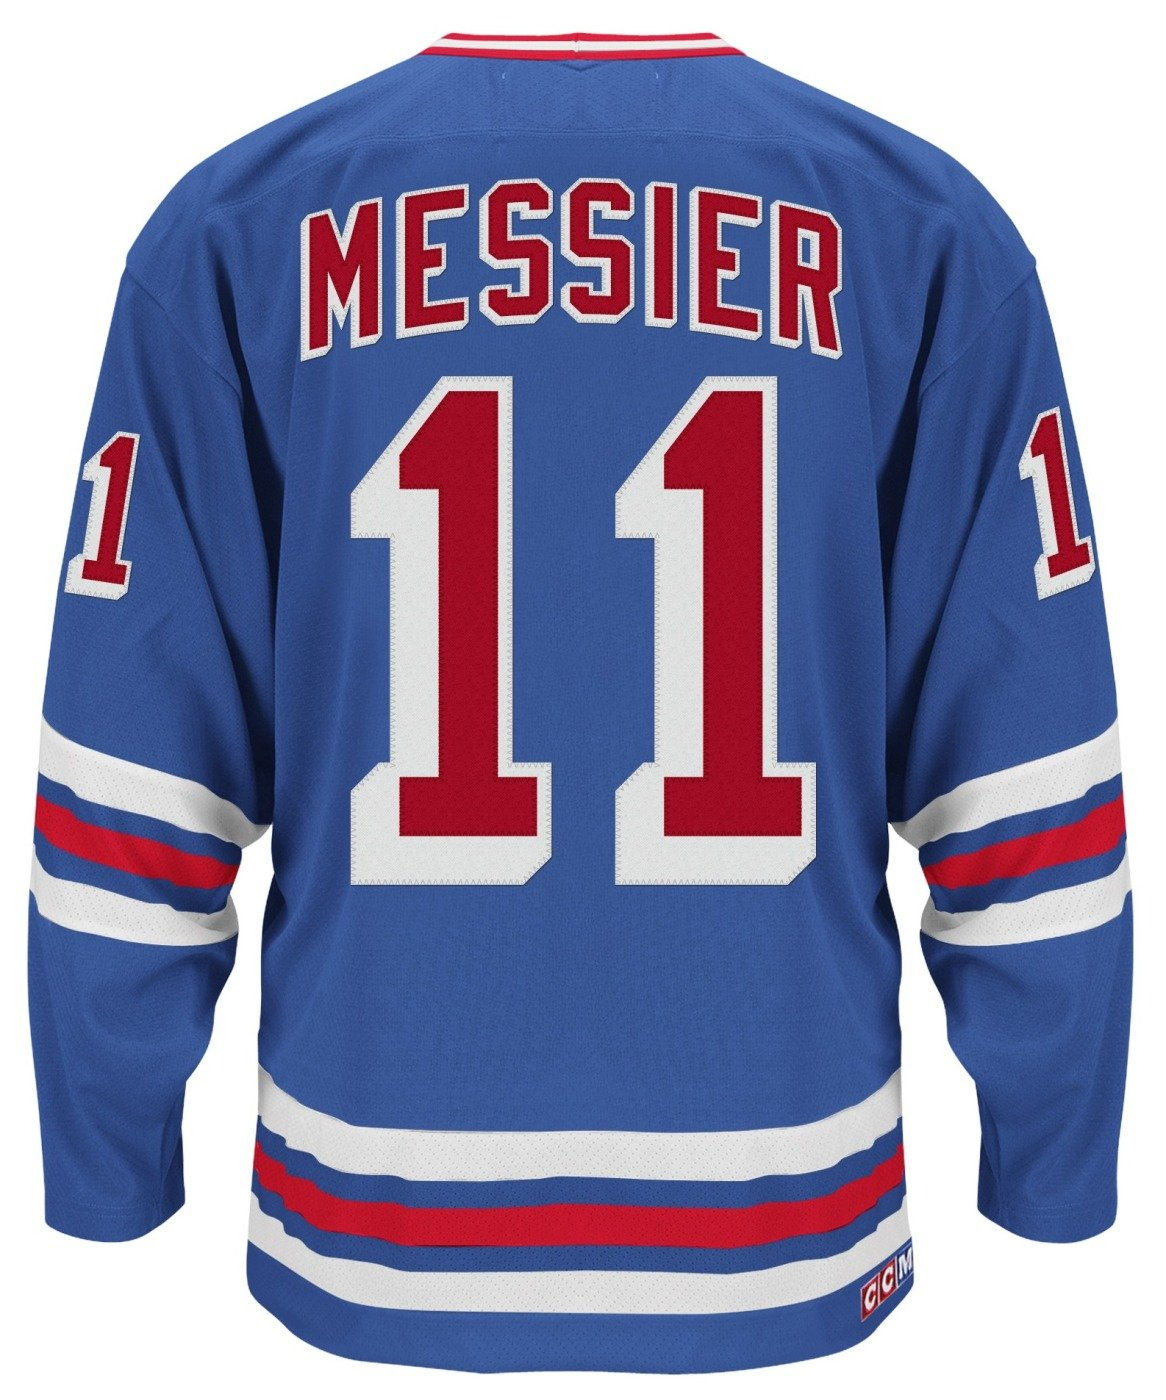 c7a9b8937 Amazon.com   adidas Mark Messier New York Rangers CCM Heroes of Hockey  Authentic Blue Jersey   Sports   Outdoors